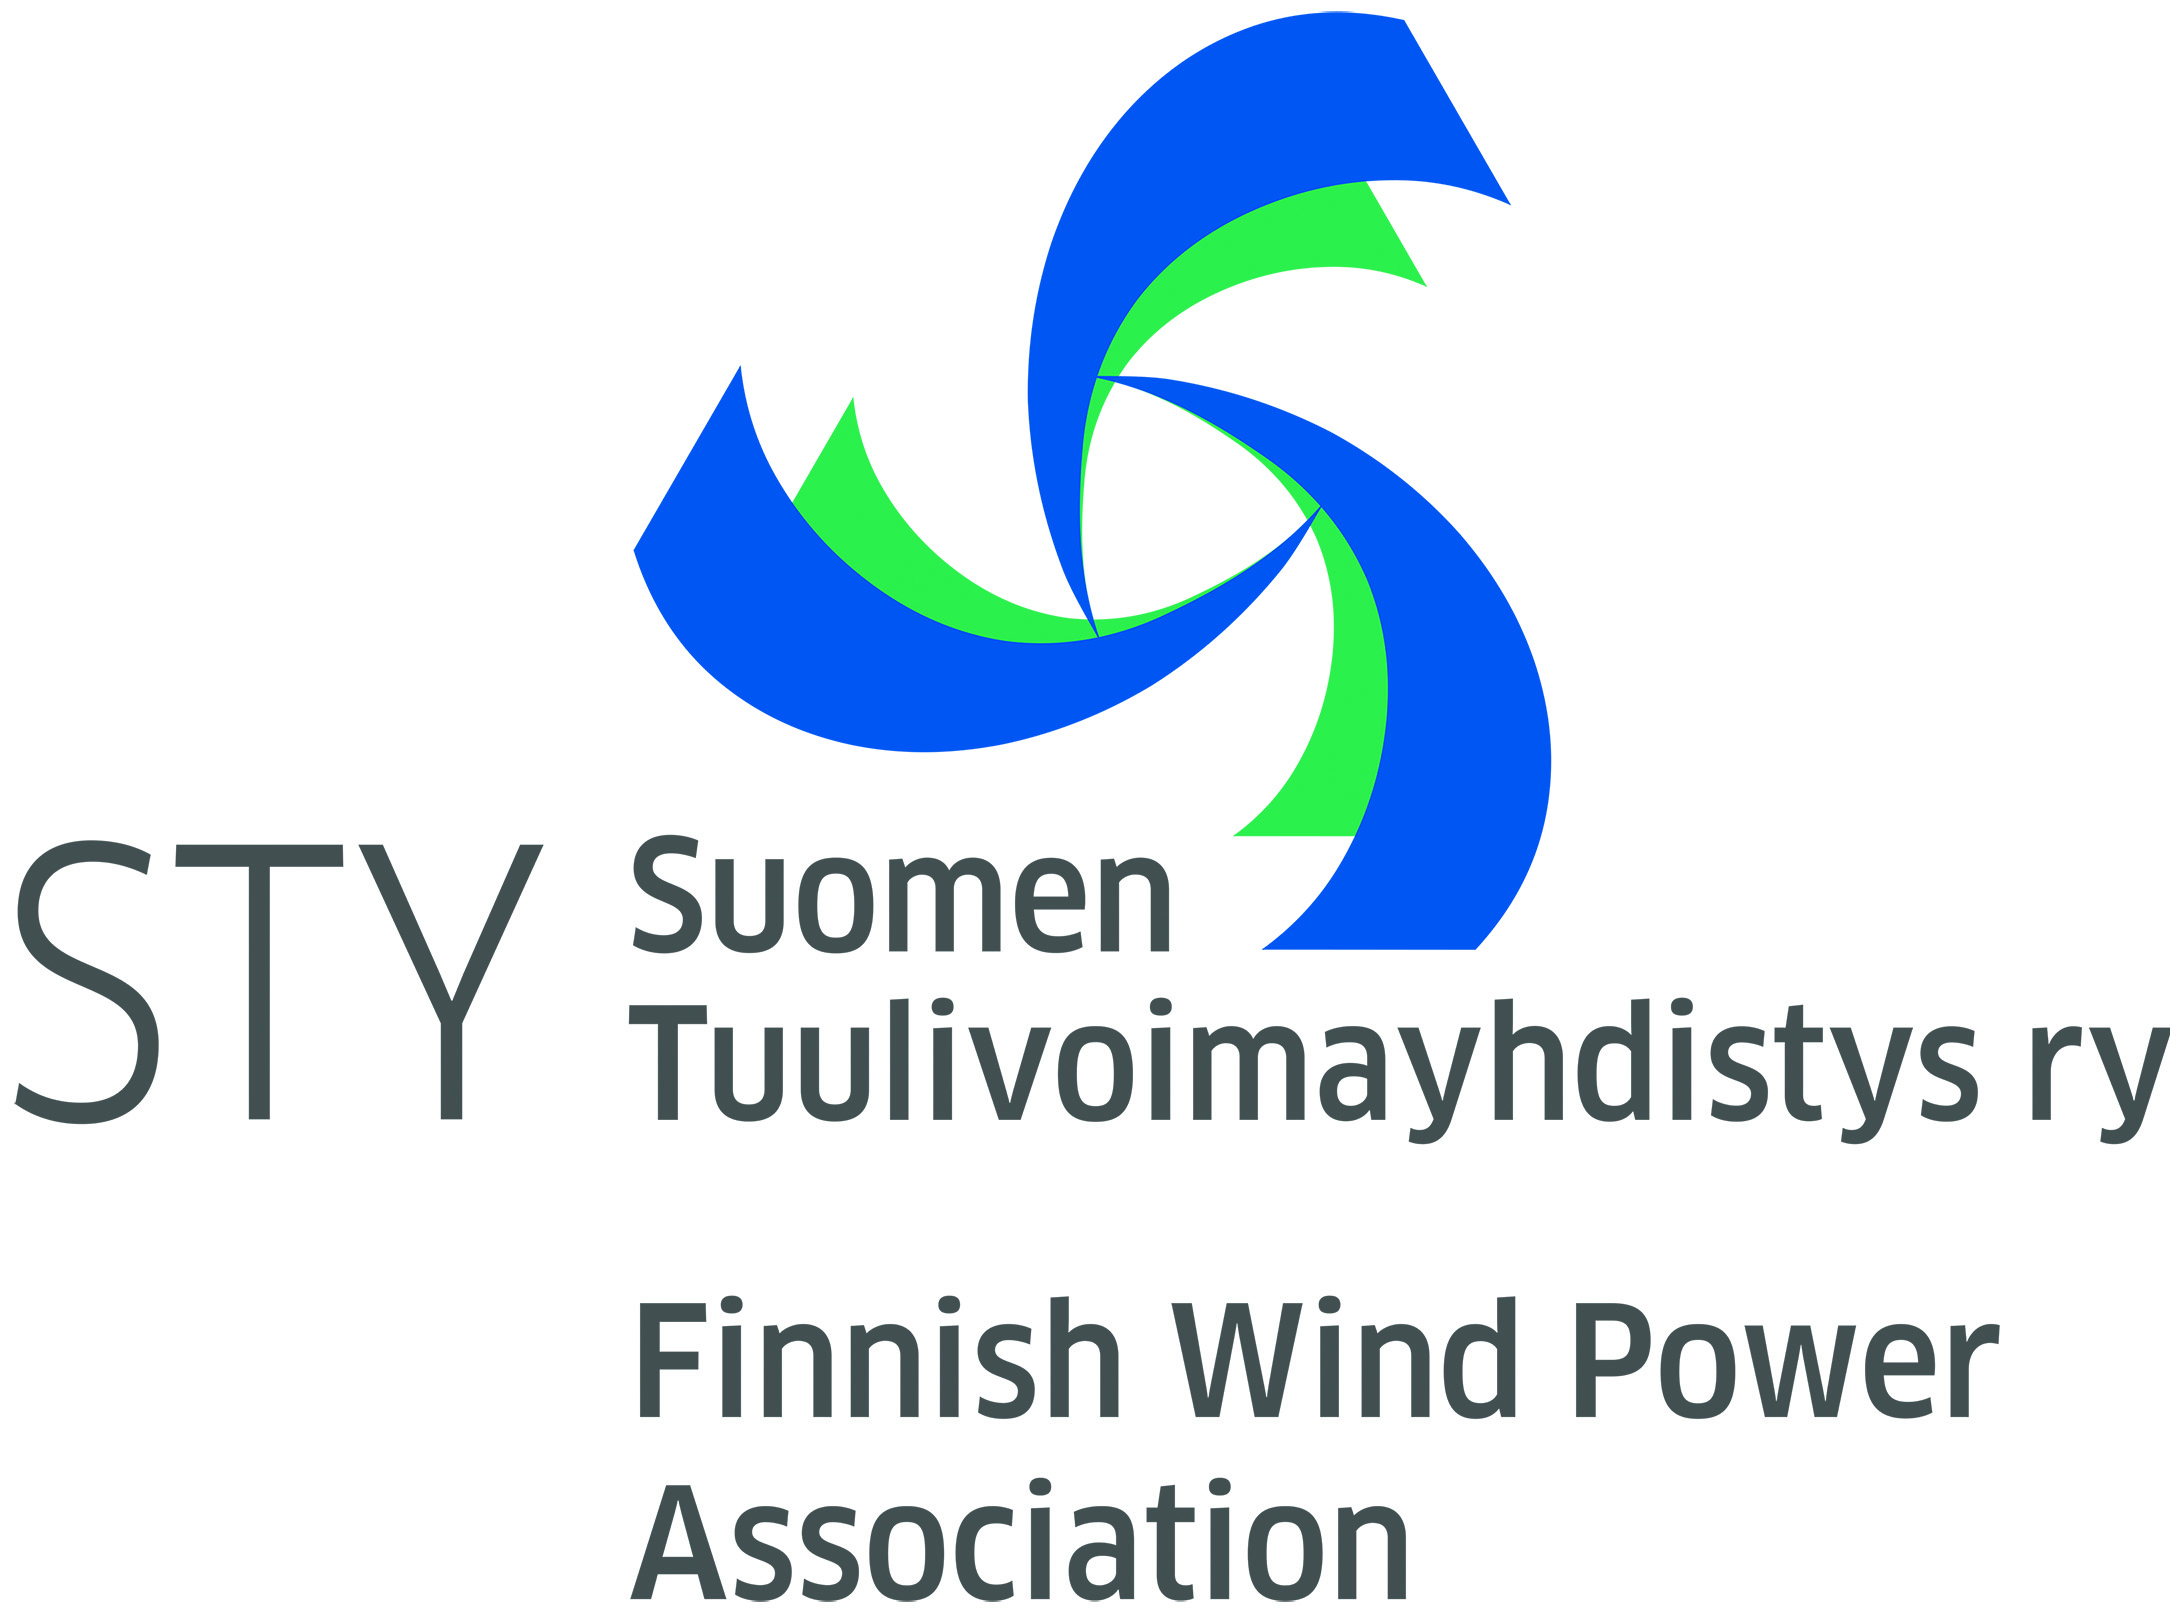 Finnish Wind Power Association